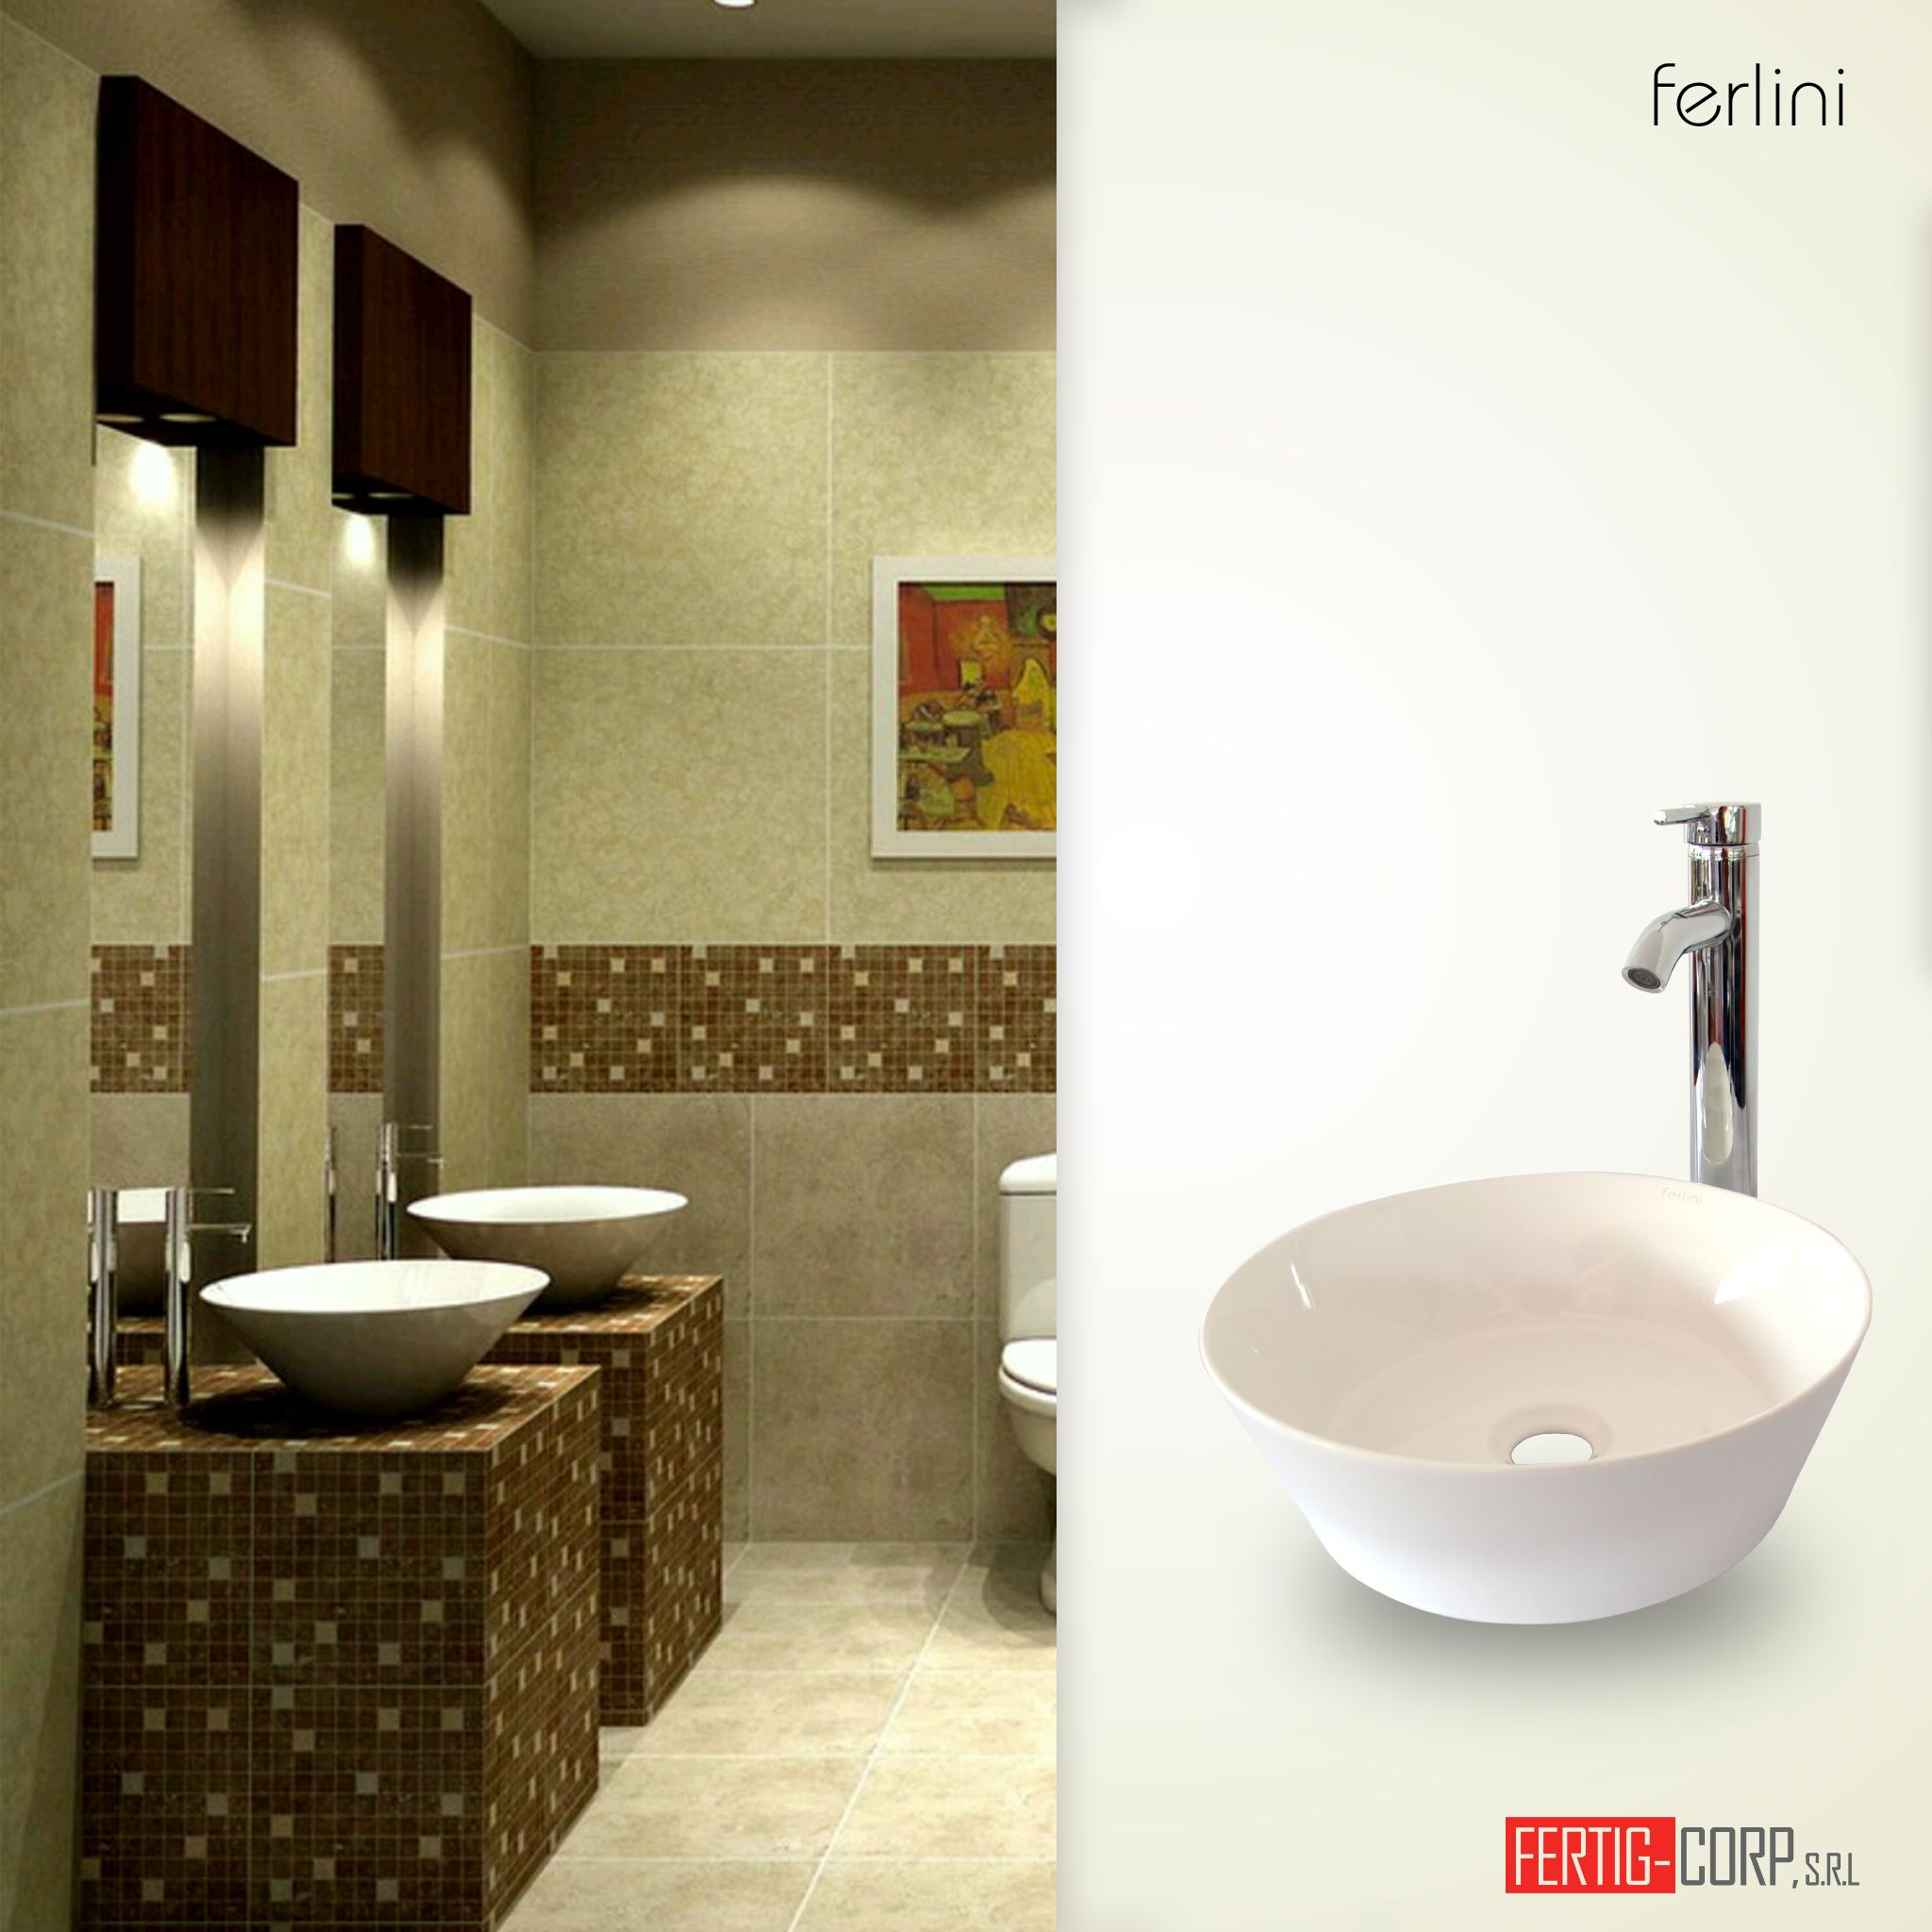 Baños en tonalidades tierra convertiran tu baño en estilo lleno de comodidad y exclusividad. ‪#‎FertigCorp‬ ‪#‎homedesign‬ ‪#‎interiordesign‬ ‪#‎interiores‬ ‪#‎baños‬ ‪#‎bathroooms‬ ‪#‎bañosconestilo‬ ‪#‎singularbathrooms‬ ‪#‎modahogar‬ ‪#‎stylishbathroom‬ ‪#‎relax‬ ‪#‎home‬ ‪#‎furniture‬ ‪#‎decor‬ ‪#‎bathroomdecorn‬ ‪#‎decoraciondebaños‬ ‪#‎bathroomdesign‬ ‪#‎diseñodeinterior‬ ‪#‎amazing‬ ‪#‎yoquieroestoenmicasa‬